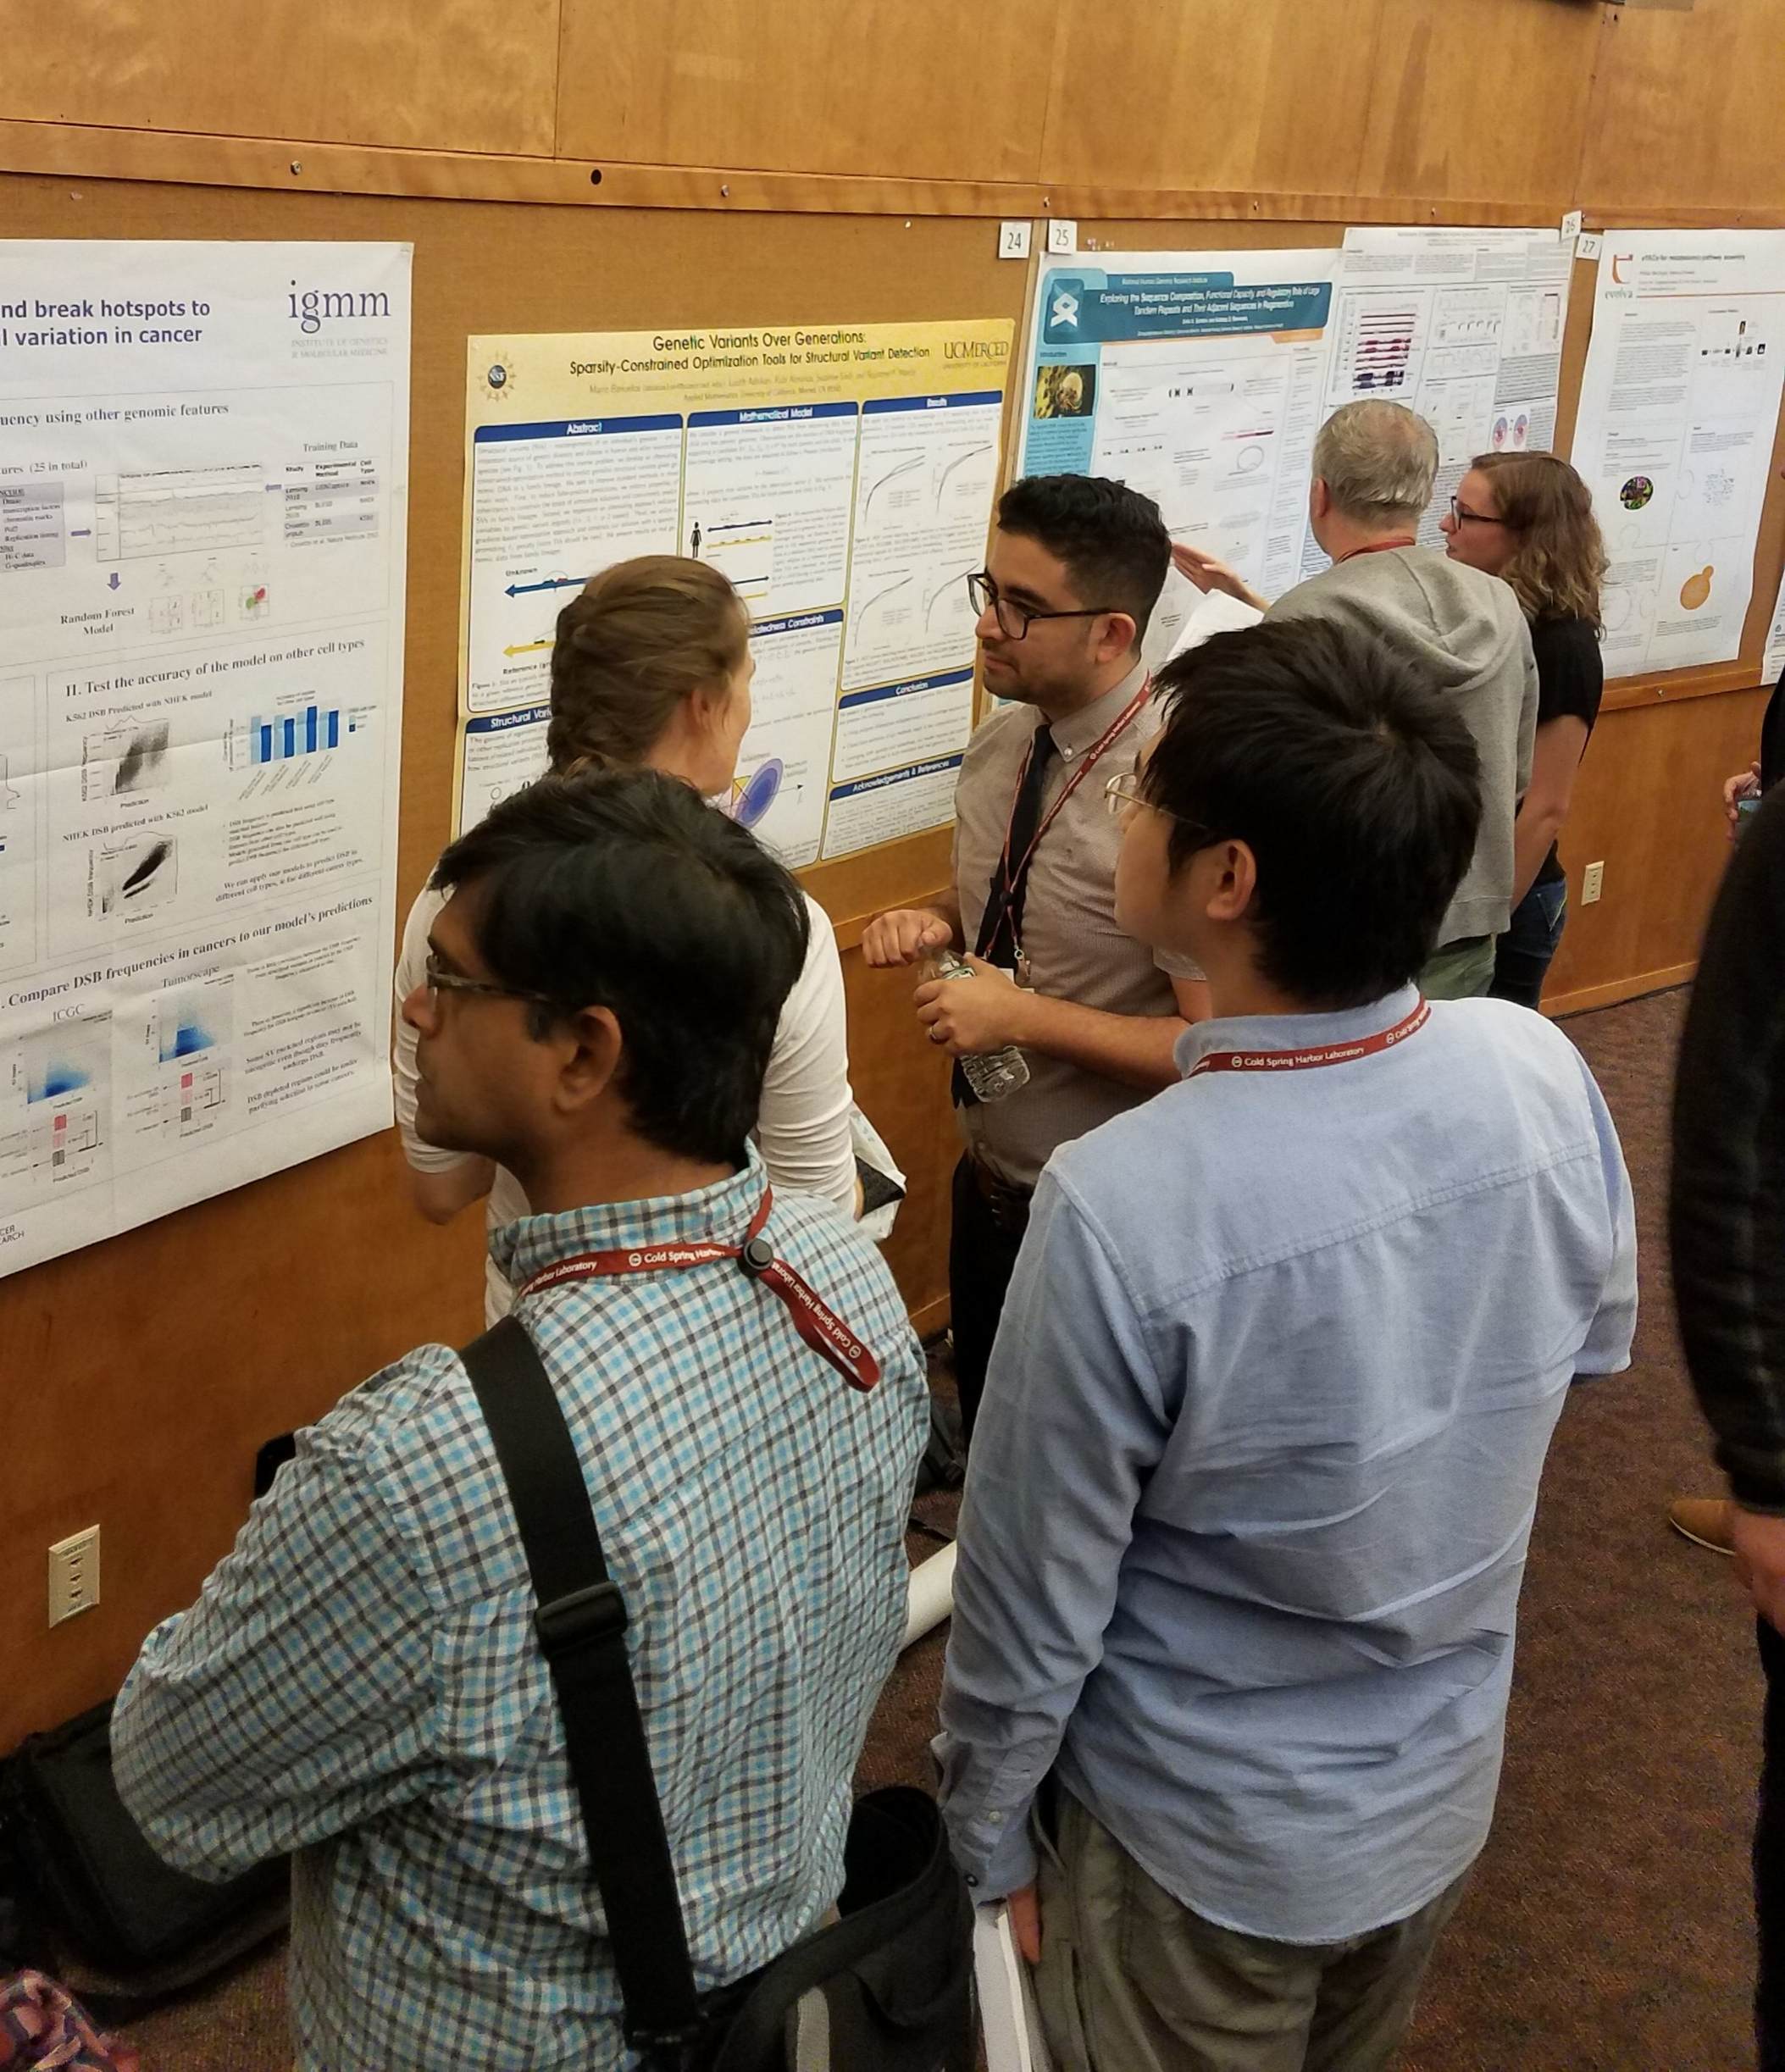 Mario Banuelos presenting his work at one of the poster sessions at the 2017 Genome Informatics meeting.